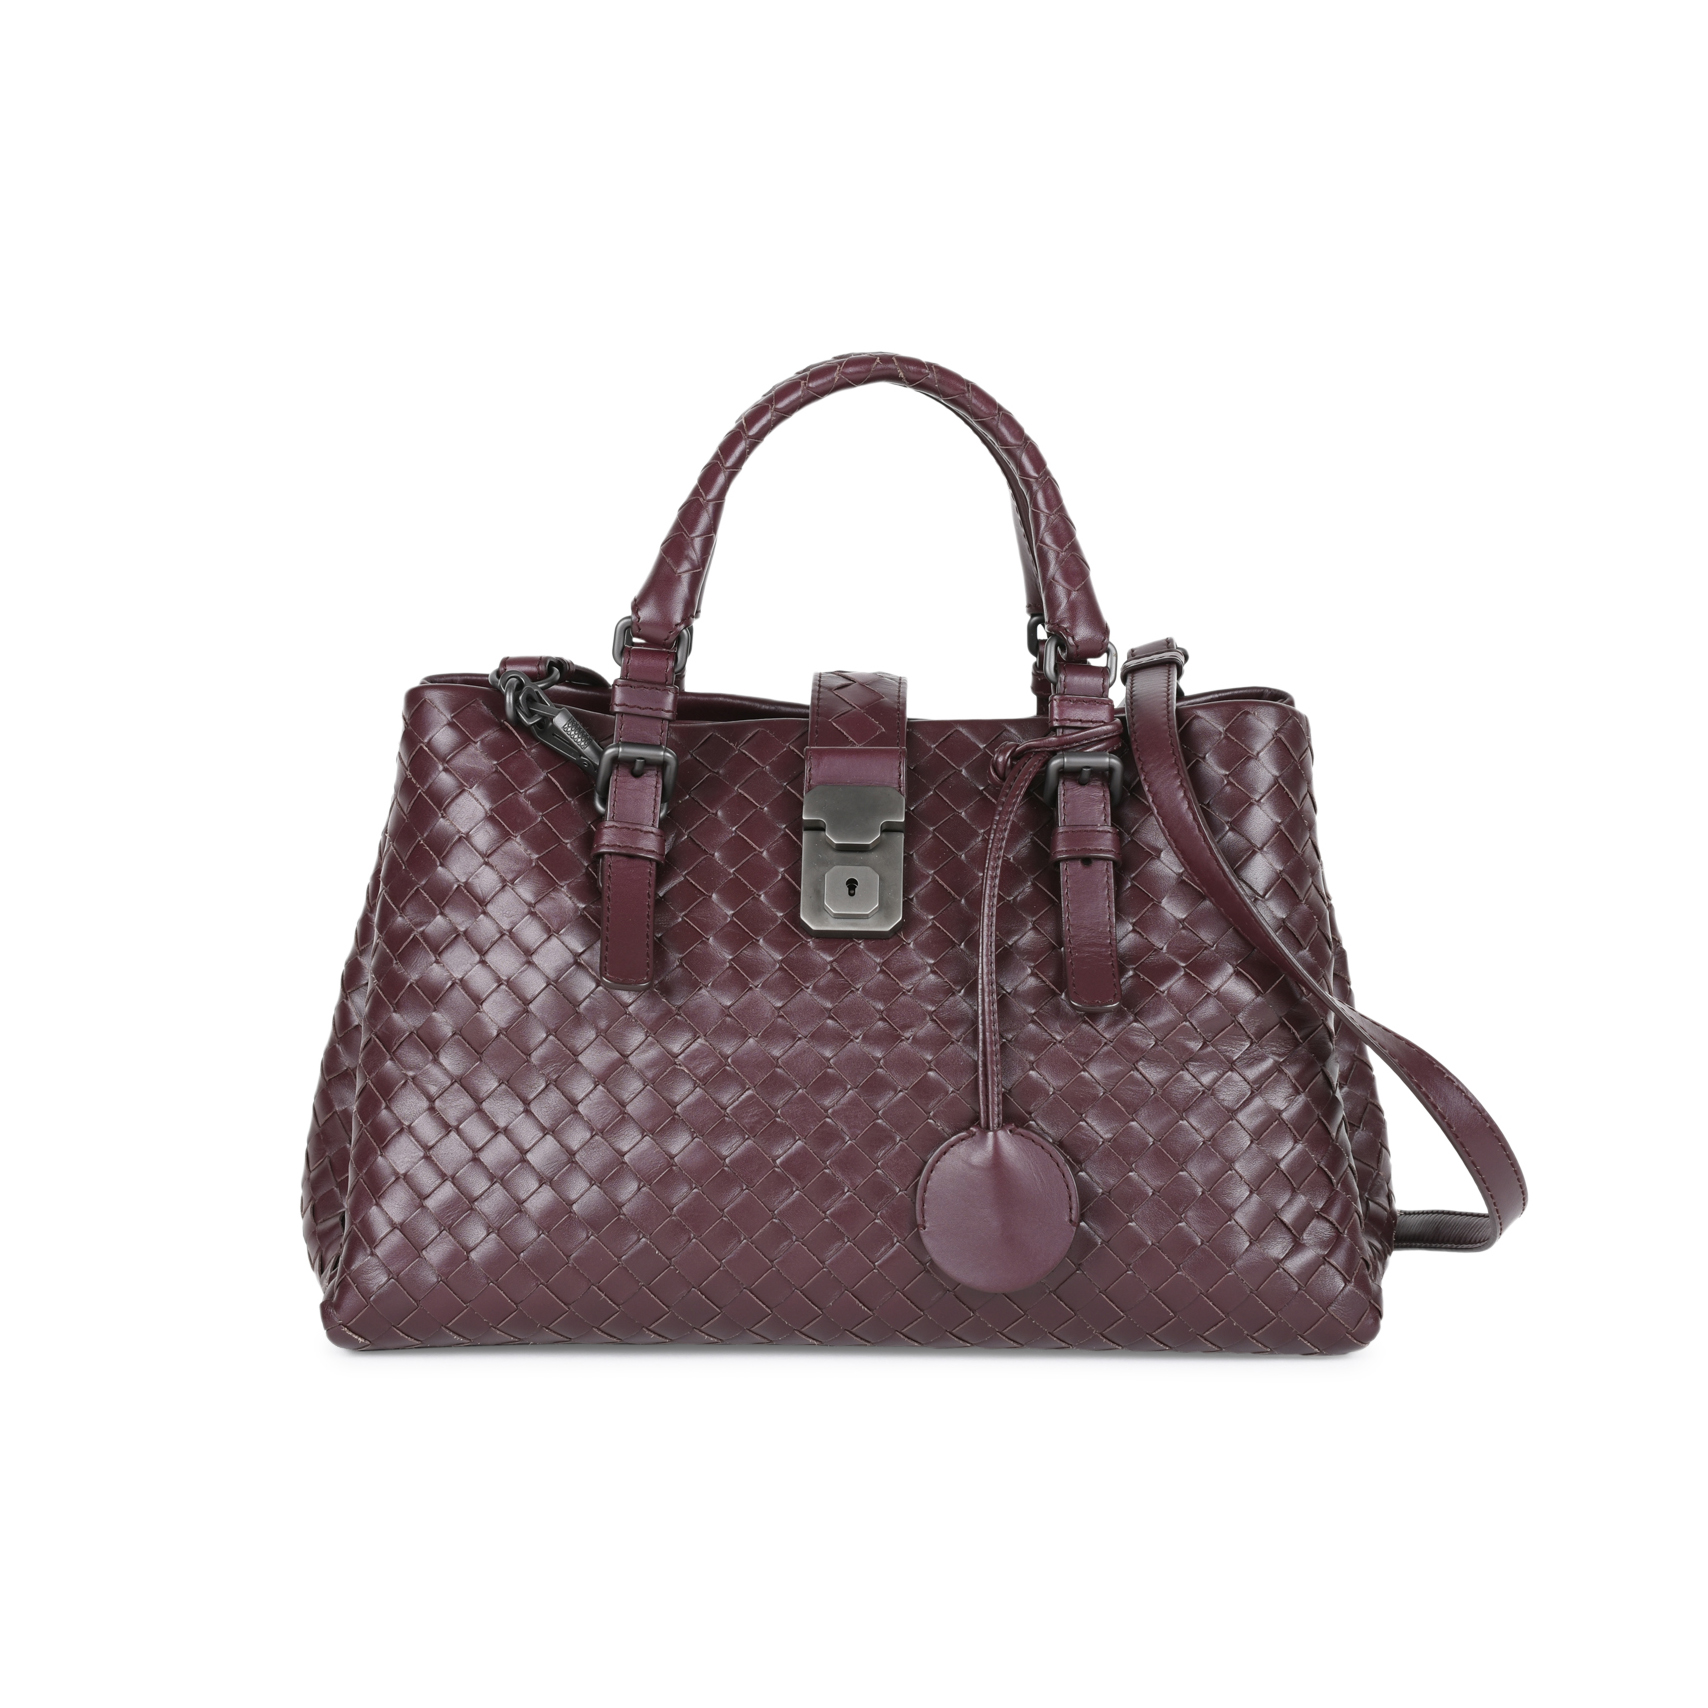 a6eb457484 Authentic Second Hand Bottega Veneta Medium Roma Intrecciato Leather Tote  (PSS-444-00011)